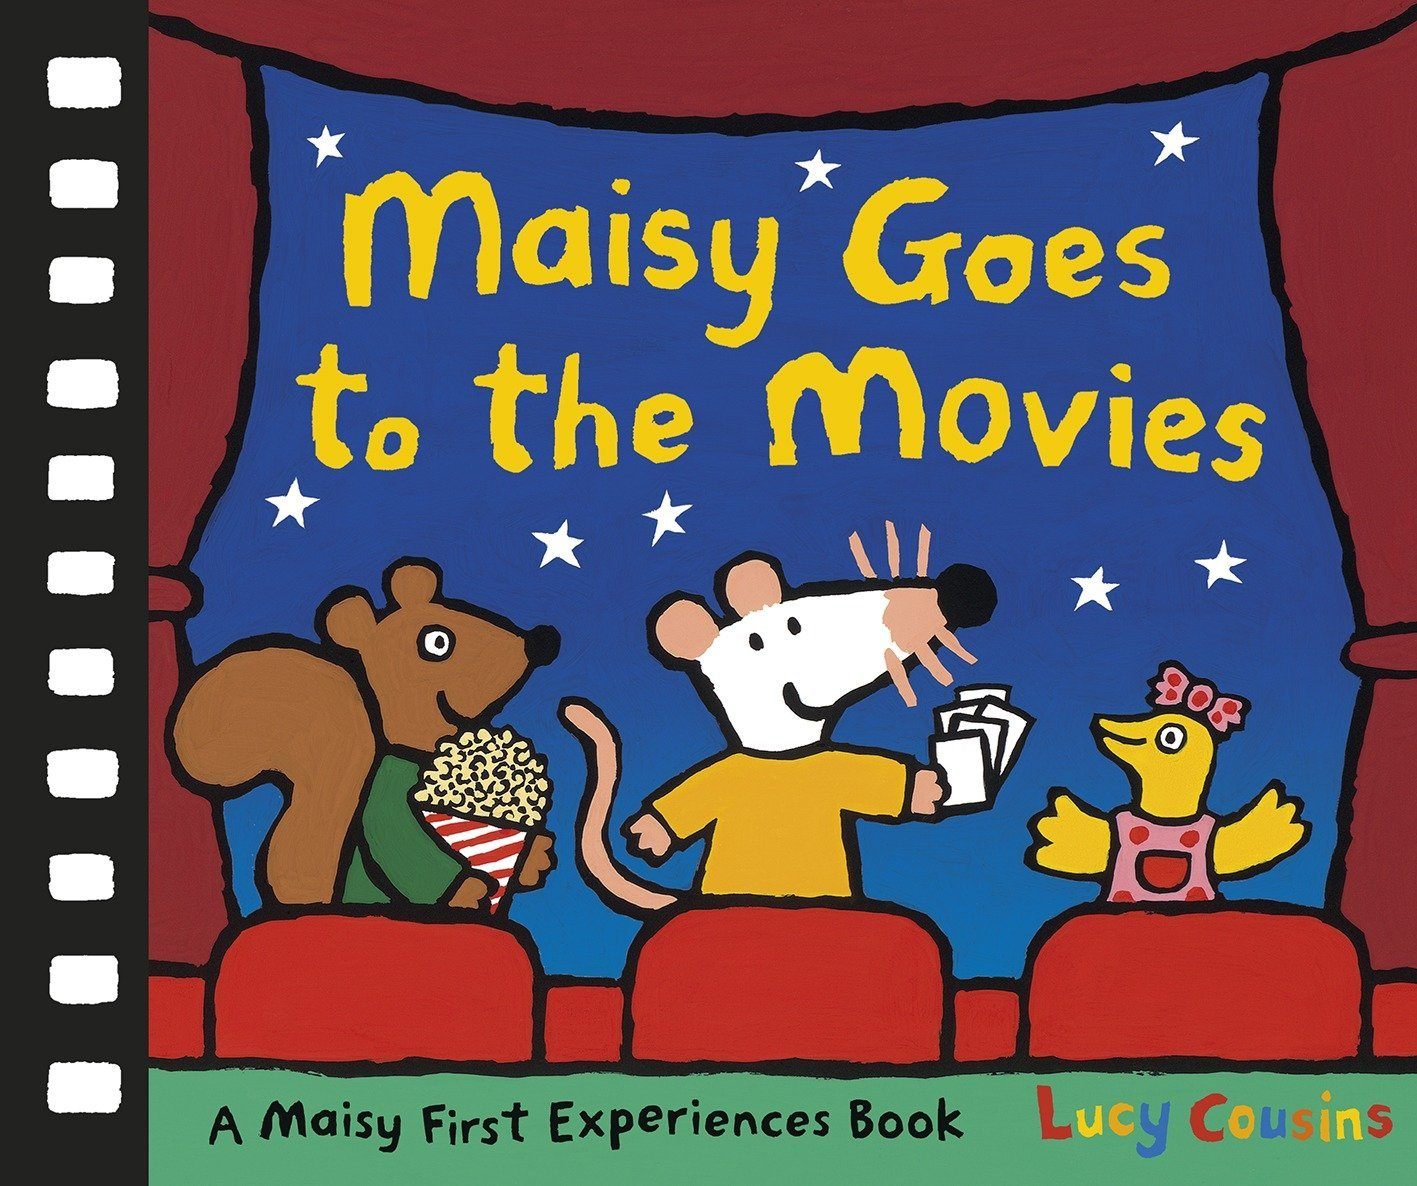 Maisy Goes to the Movies by Lucy Cousins